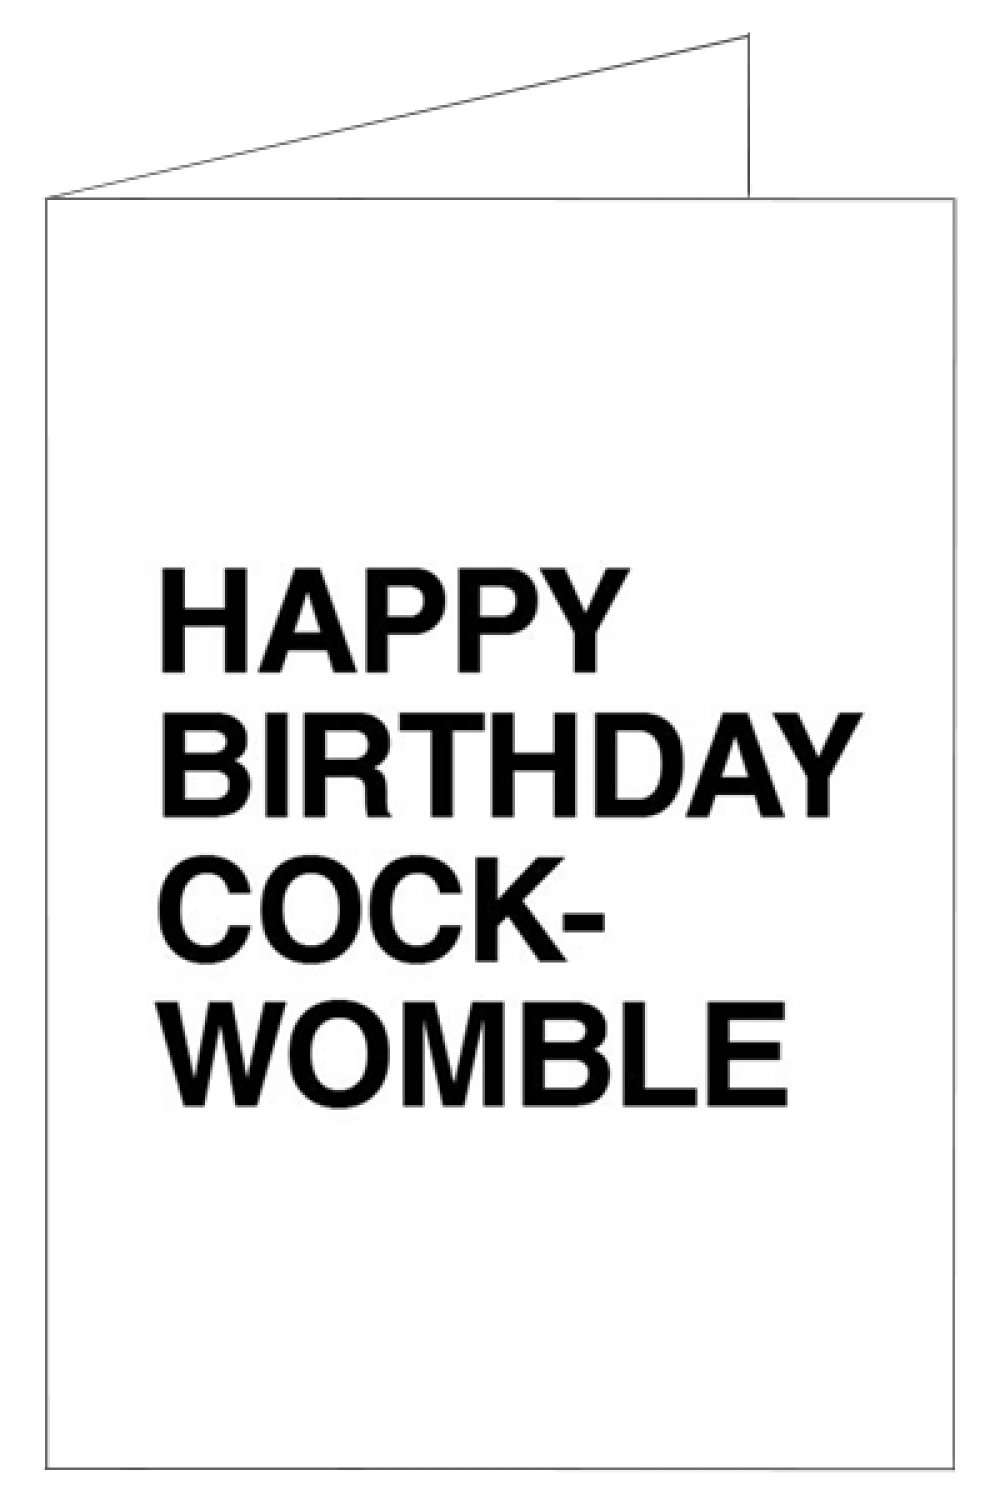 Happy birthday cockwomble insults happy birthday cockwomble insulting birthday cards m4hsunfo